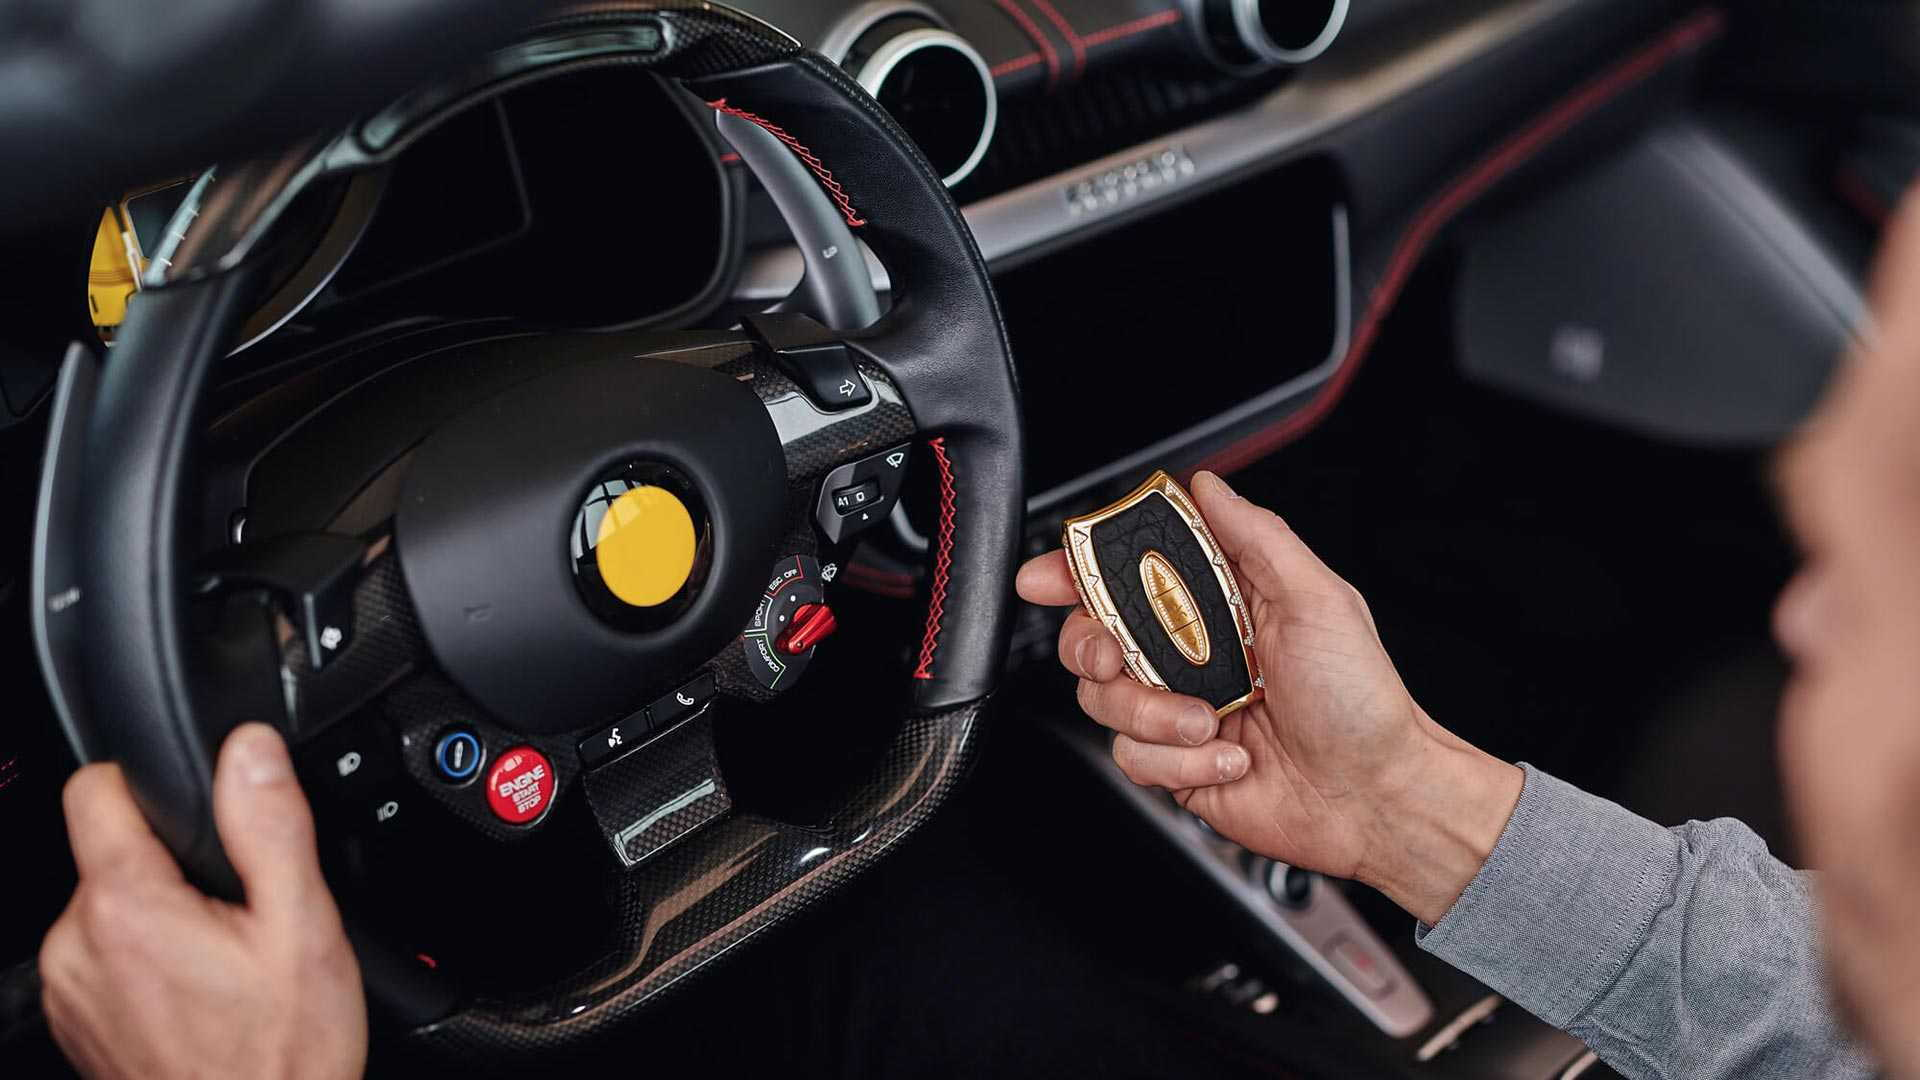 Awain Phantom luxury car key